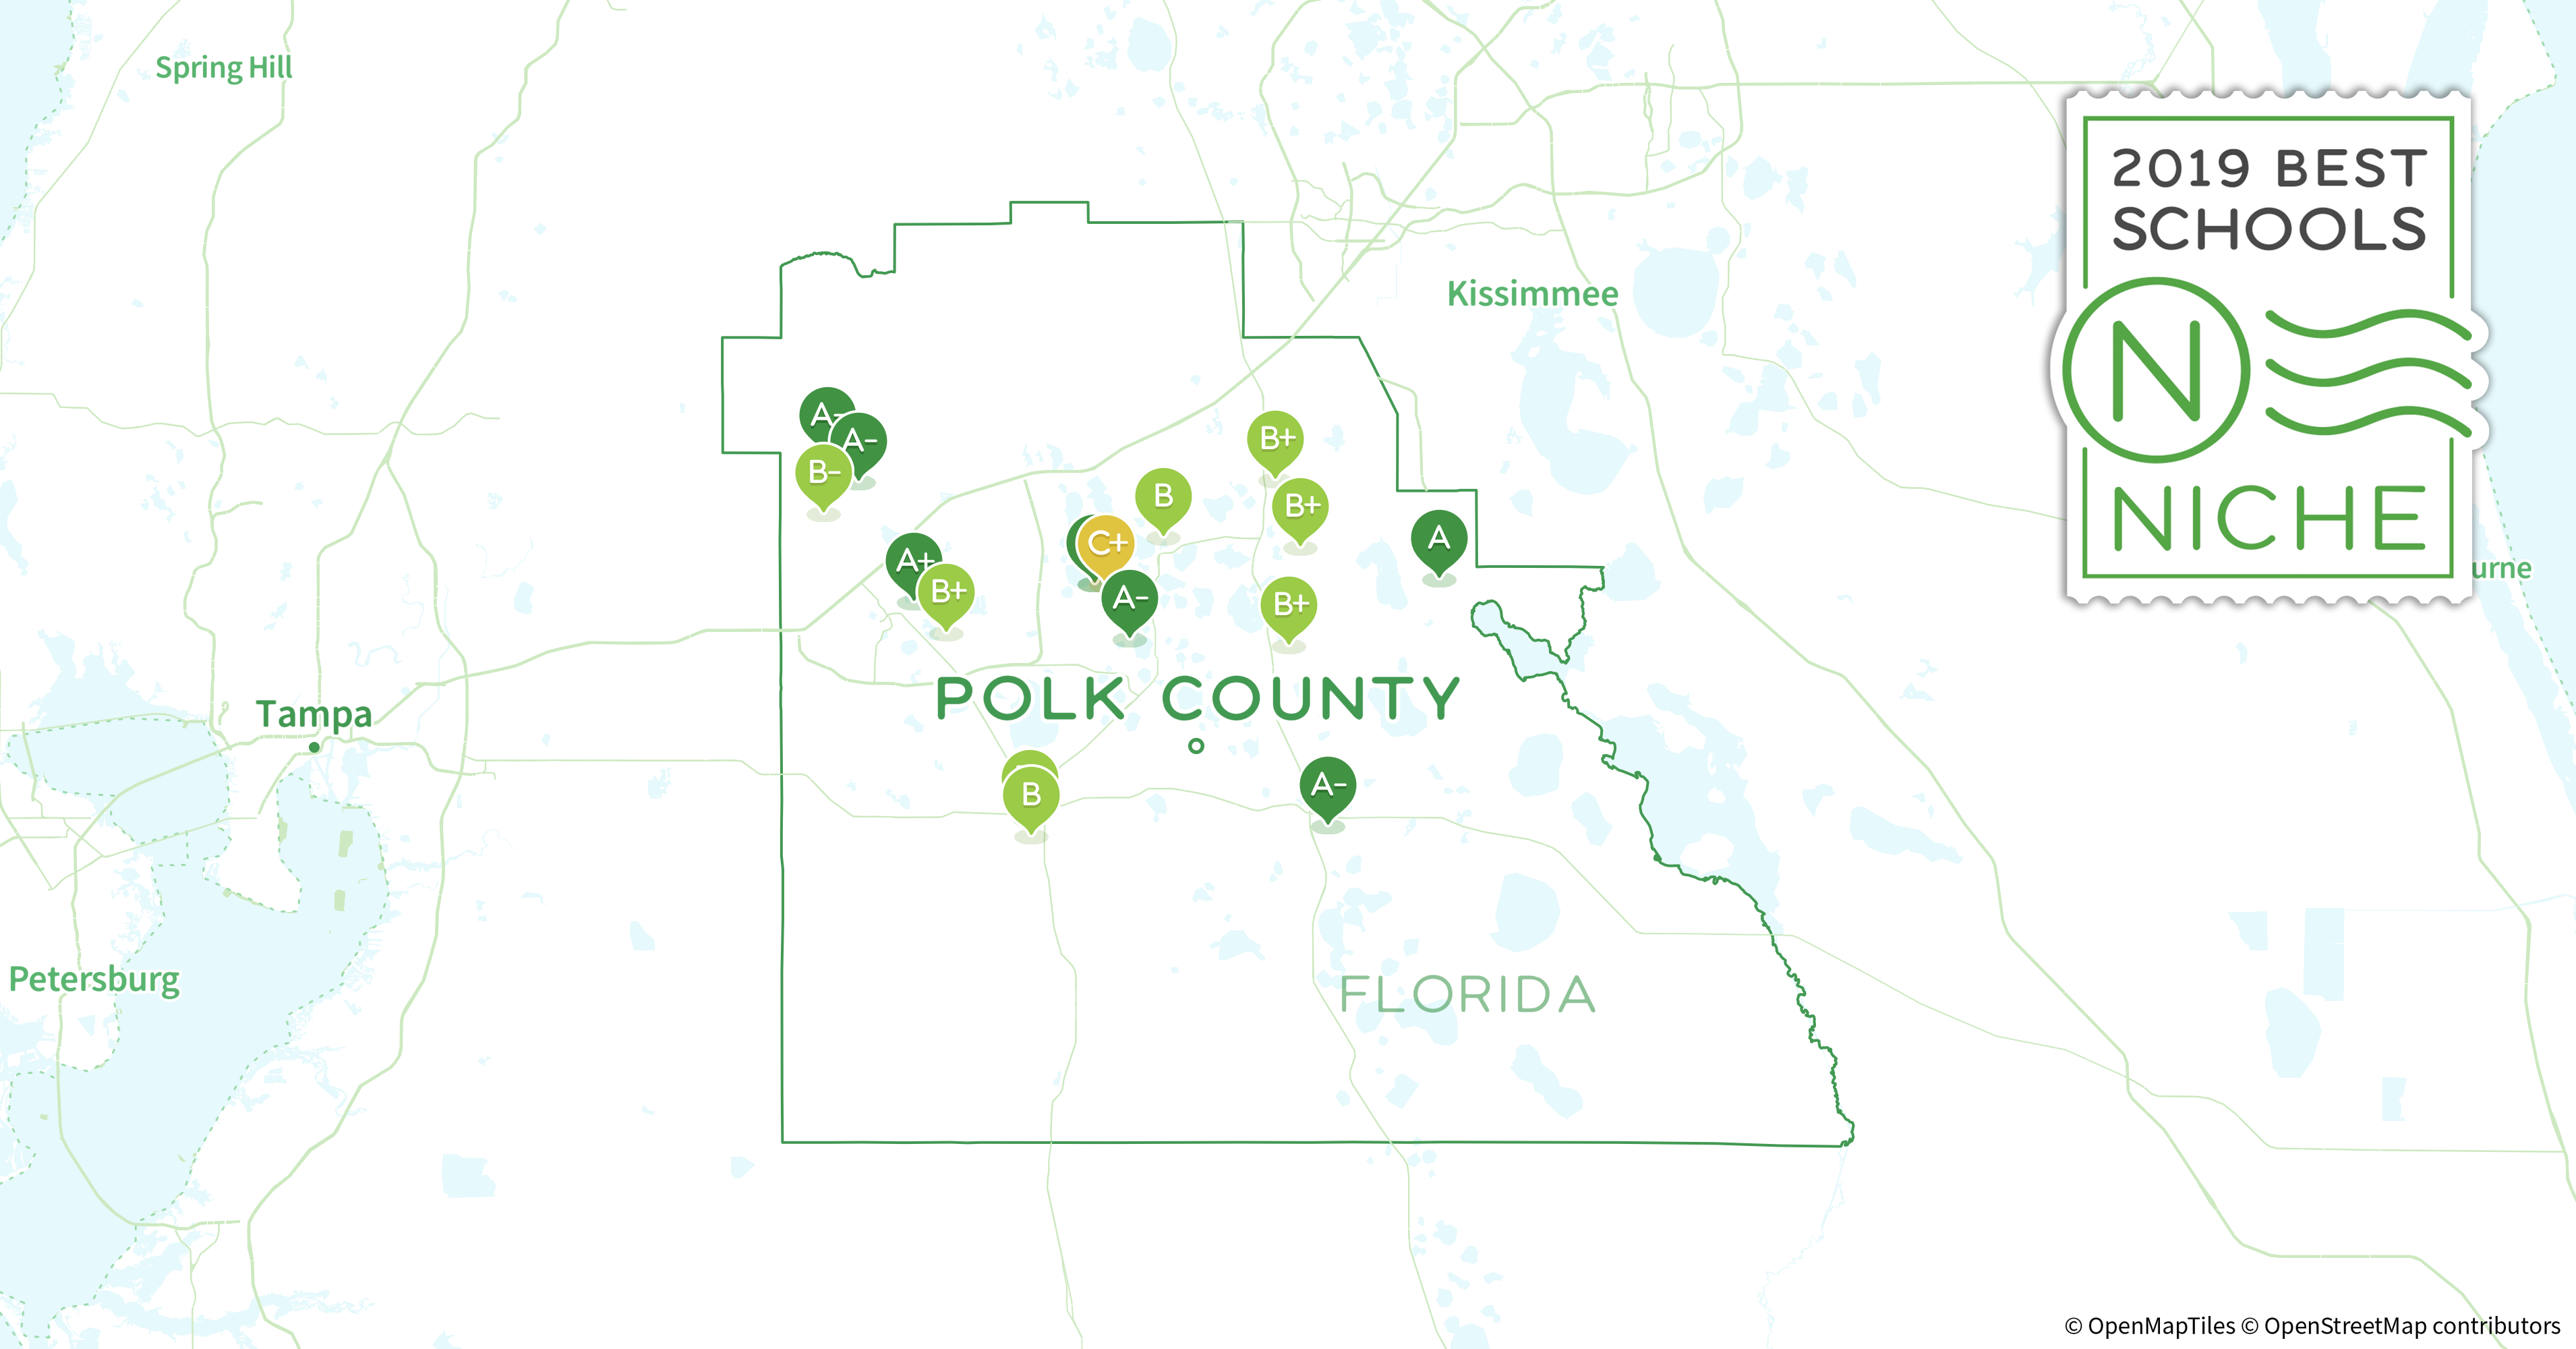 School Districts In Polk County Fl Niche